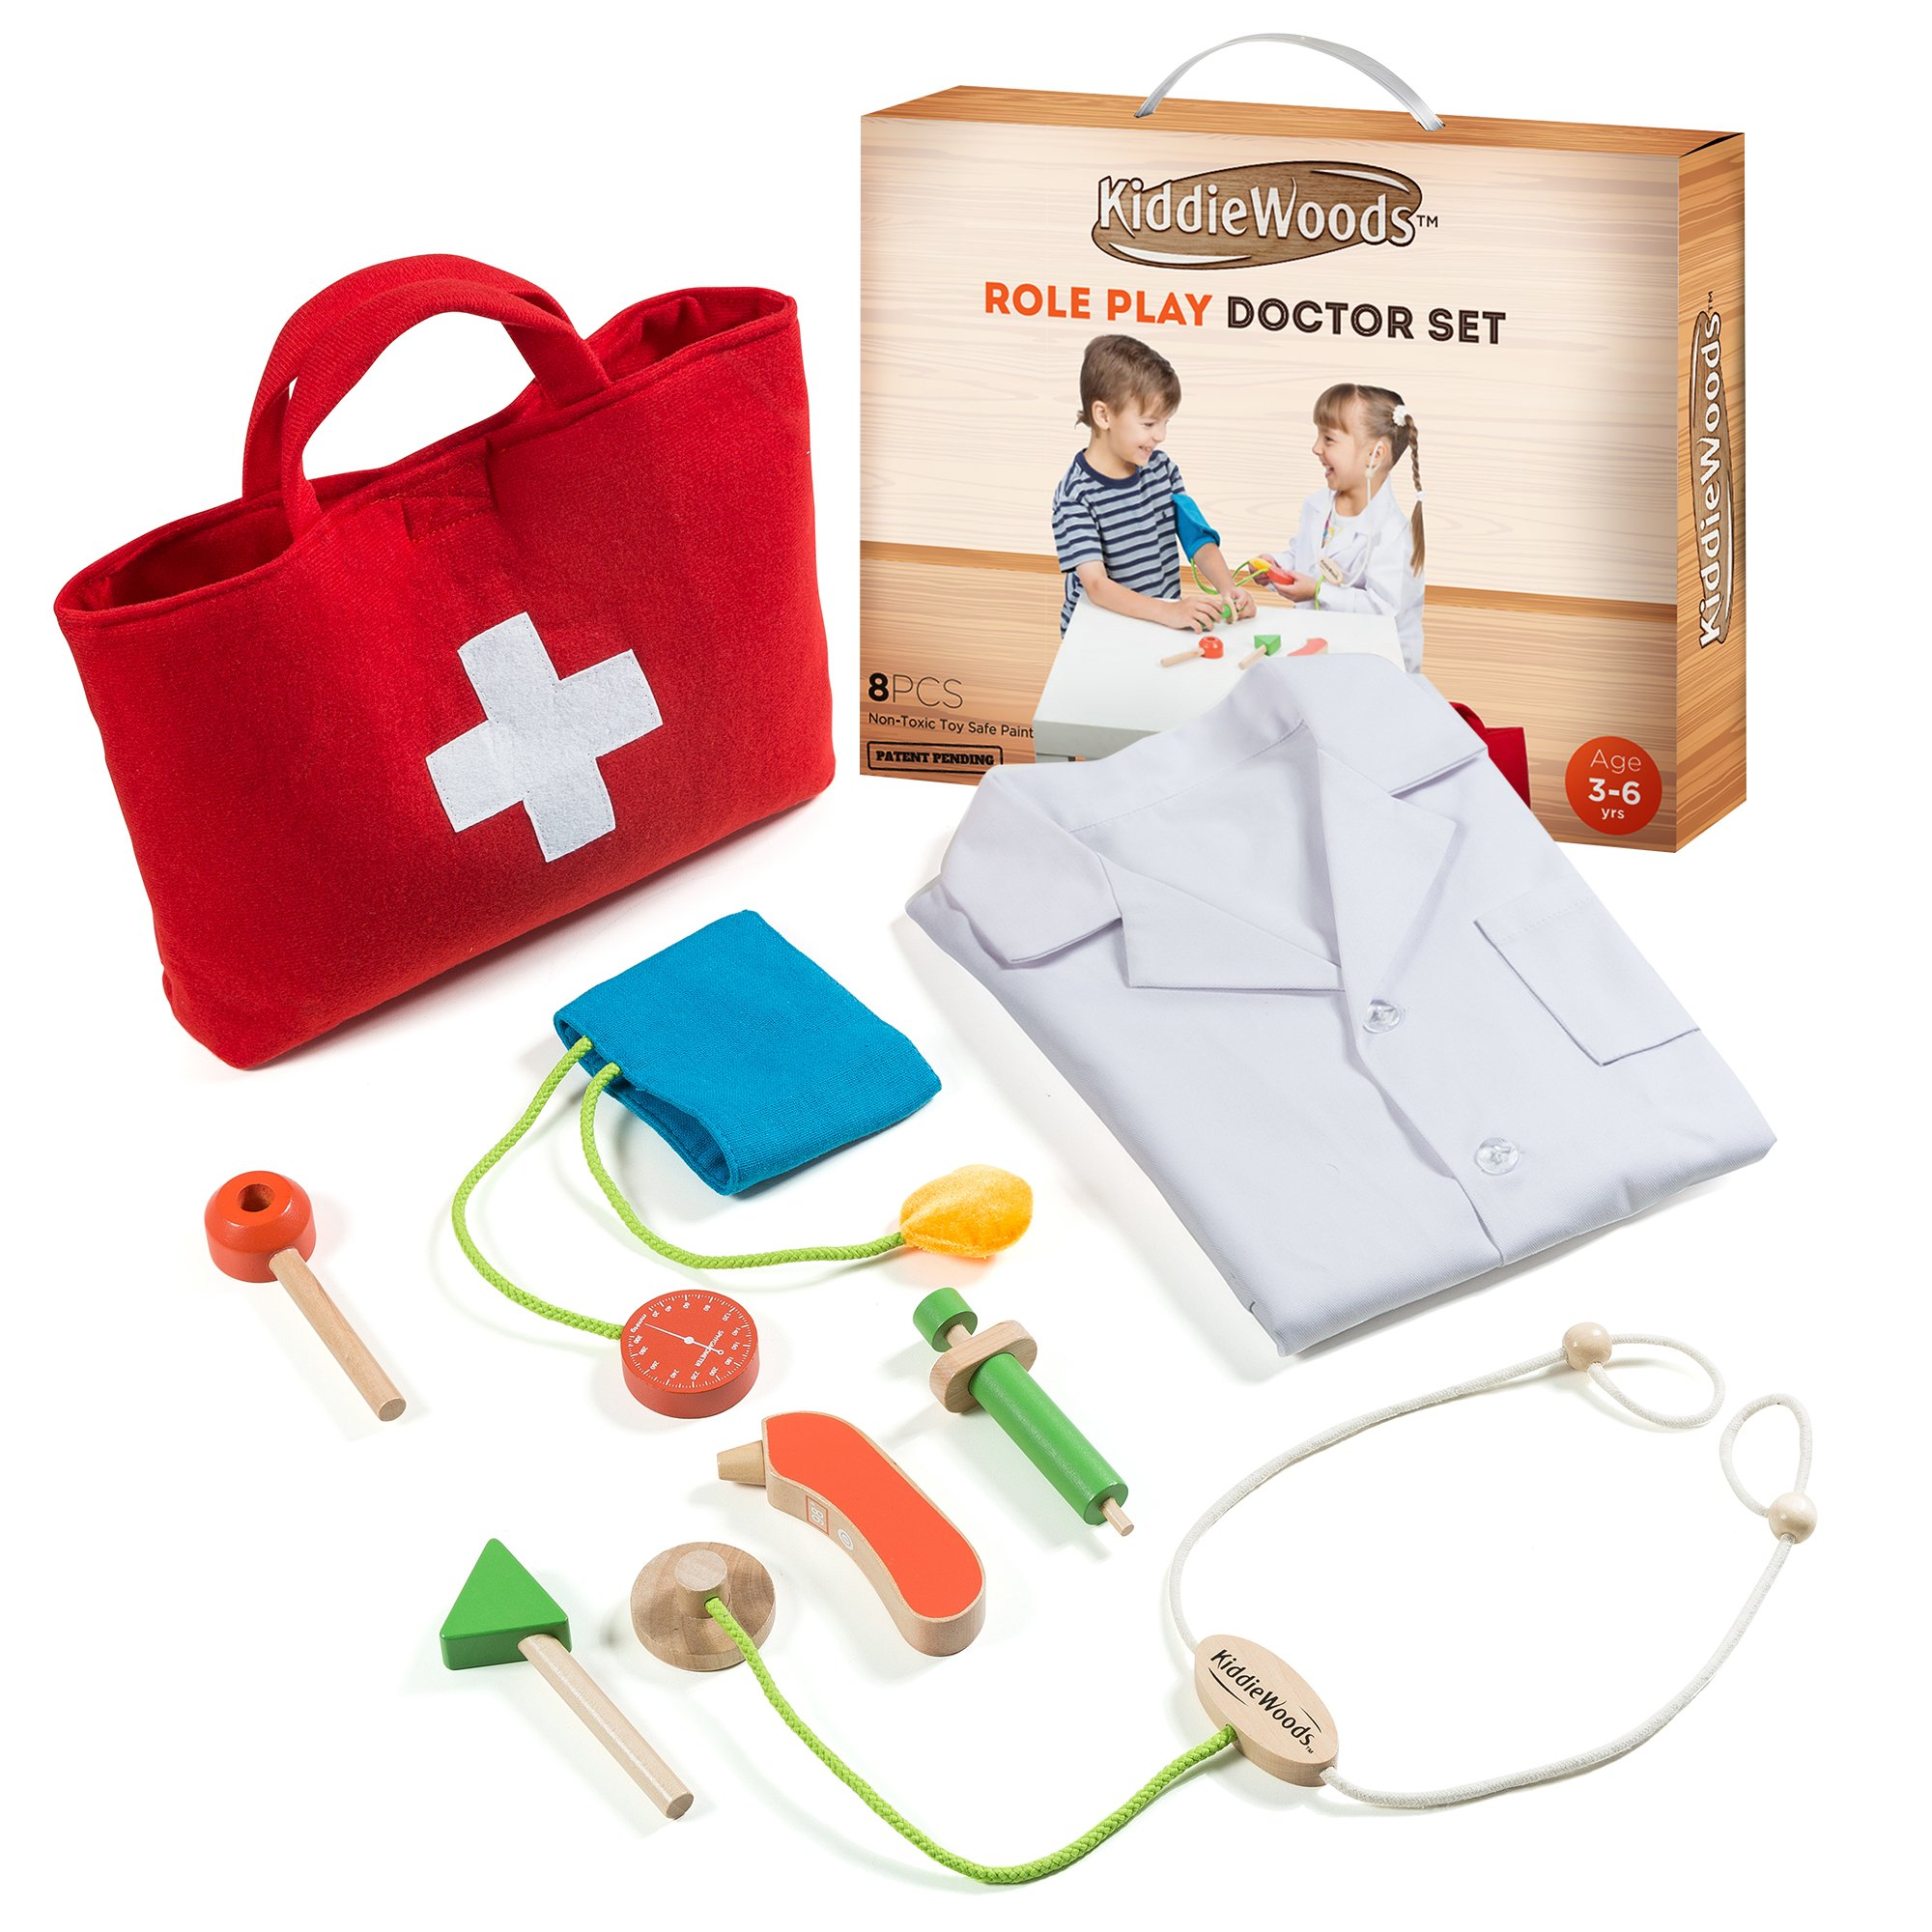 Kiddie Woods Wooden Toy Doctor Kit for Kids, Pretend Medical Play Set for Boys and Girls, Educational for Children & Older Toddlers by Kiddie Woods